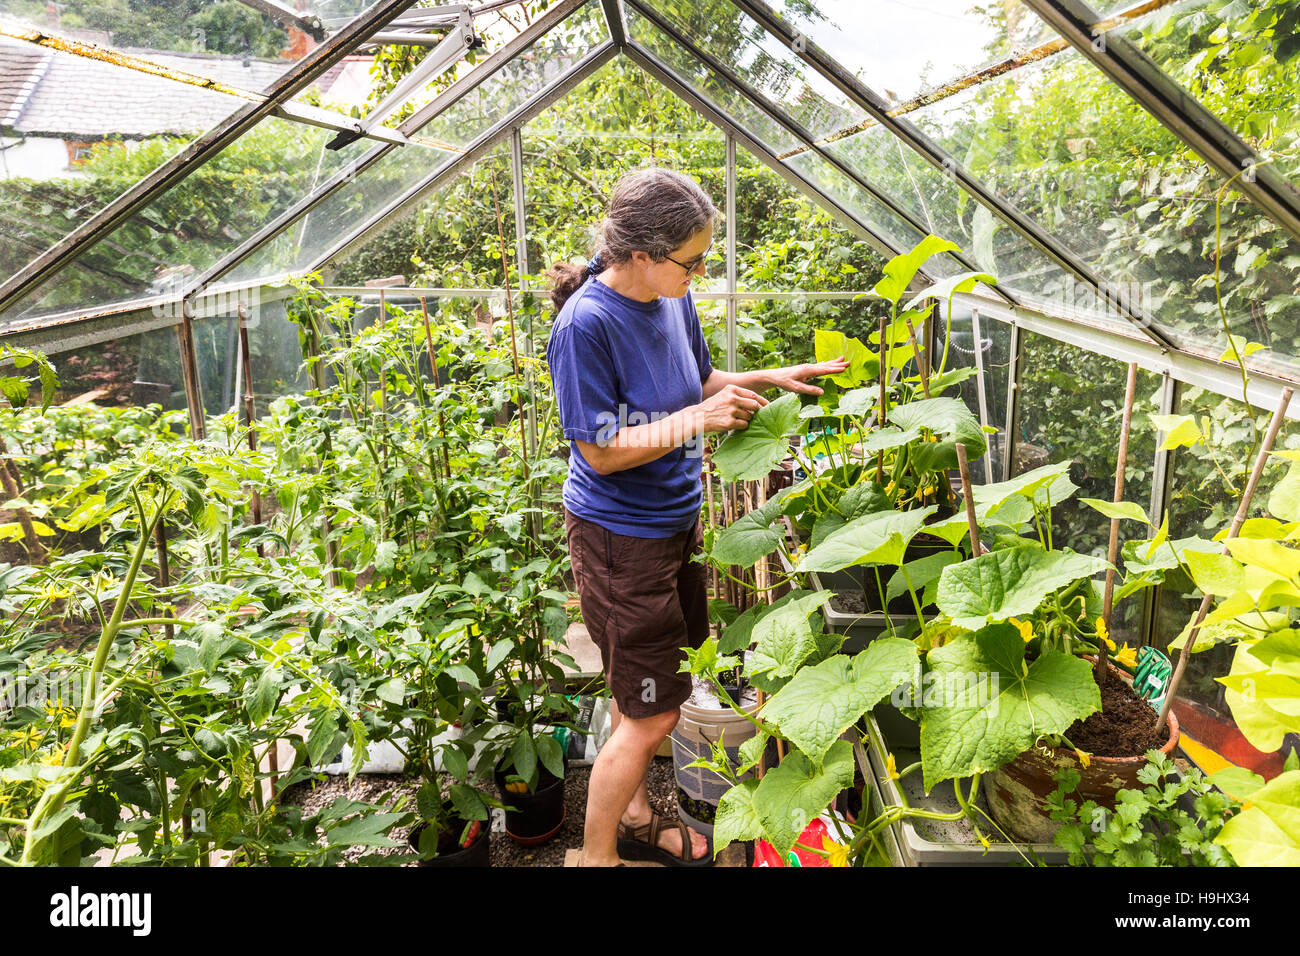 Woman tending cucumber and tomato plants in greenhouse, Wales, UK - Stock Image